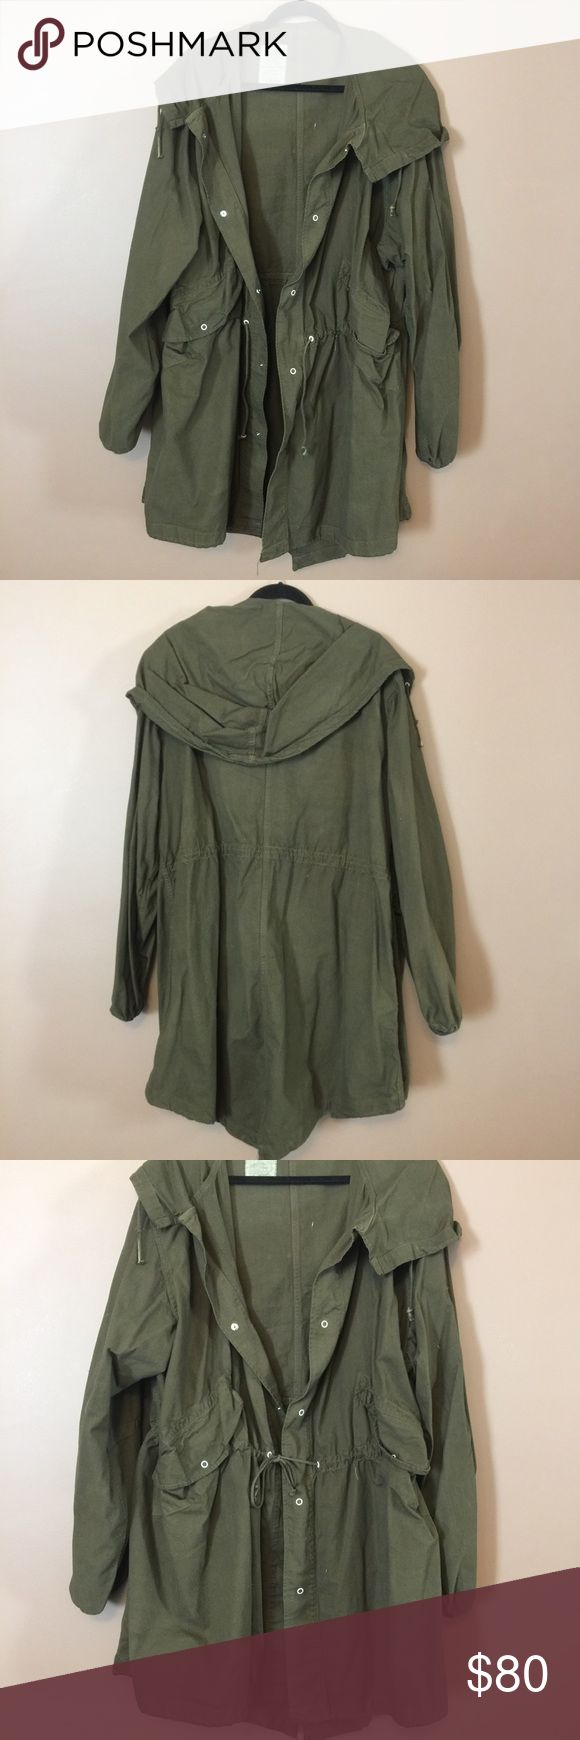 Urban Outfitters Oversized Trench Utility Jacket So comfortable, very oversized, looks great with the waist cinched with the draw string, army green Urban Outfitters Jackets & Coats Utility Jackets